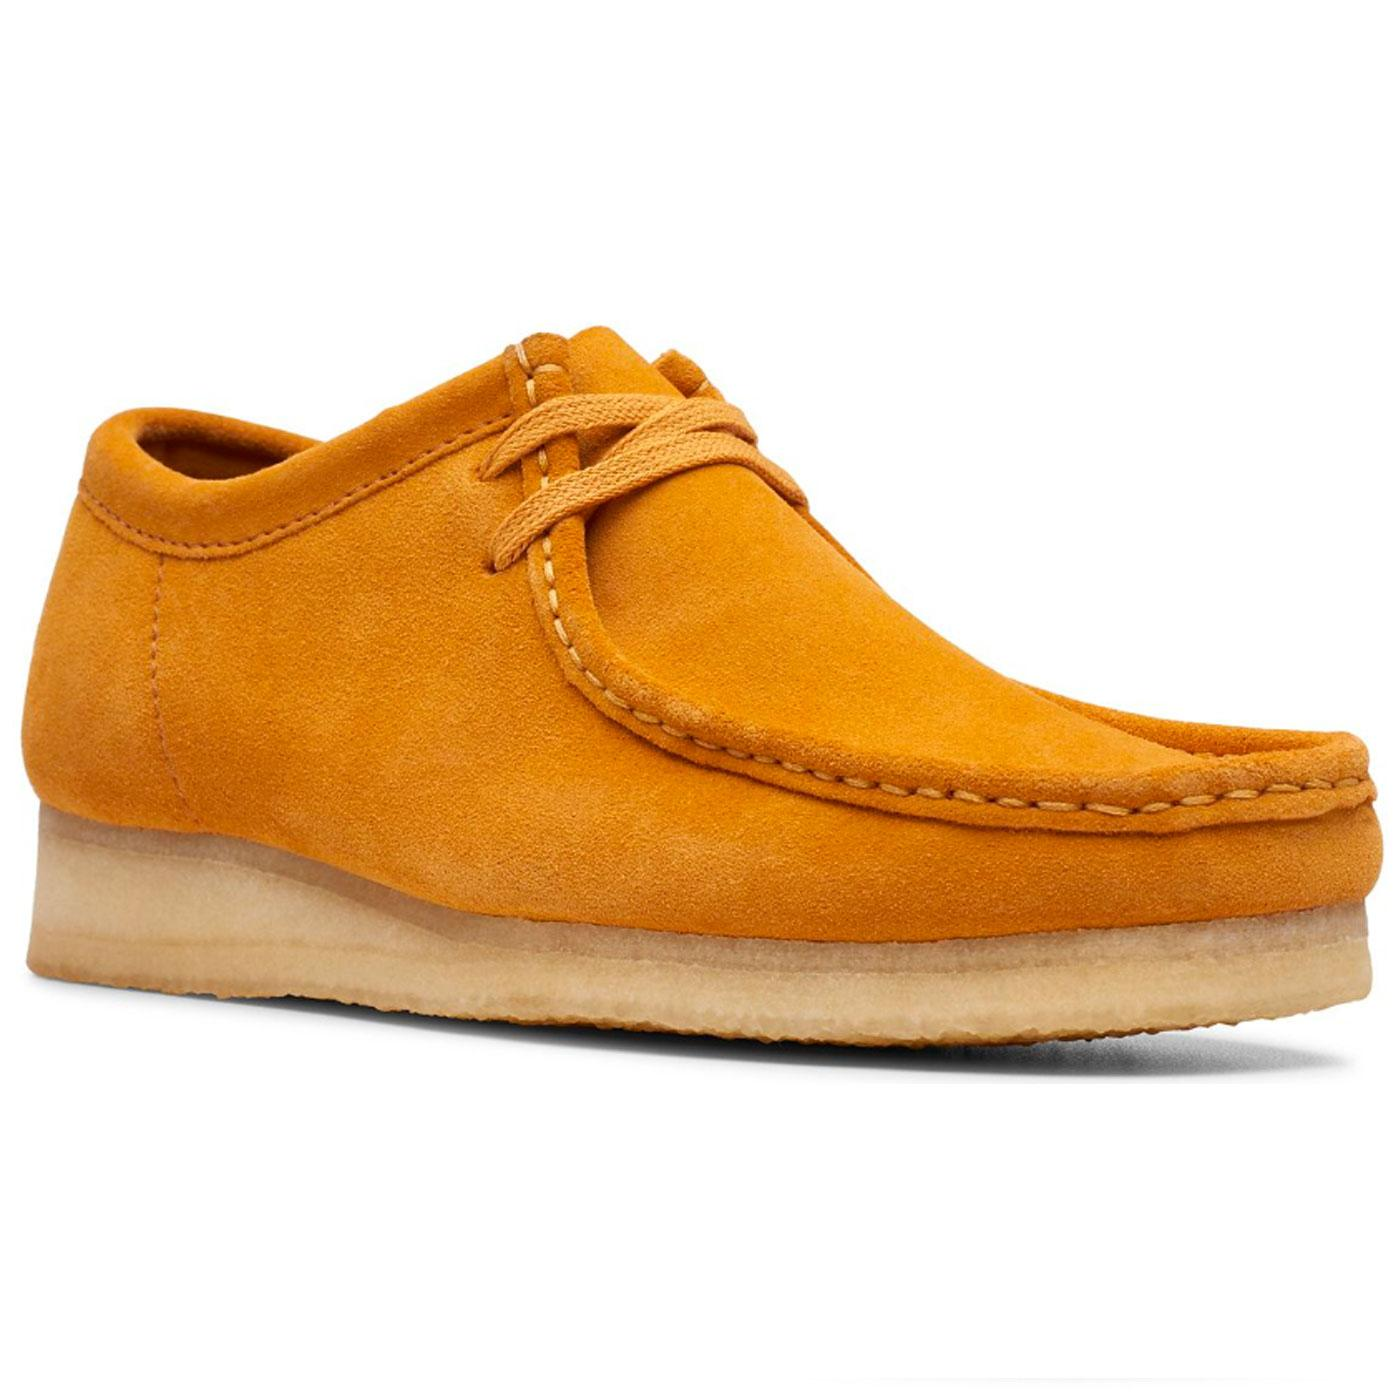 Wallabee Women's CLARKS ORIGINALS Suede Shoes (T)